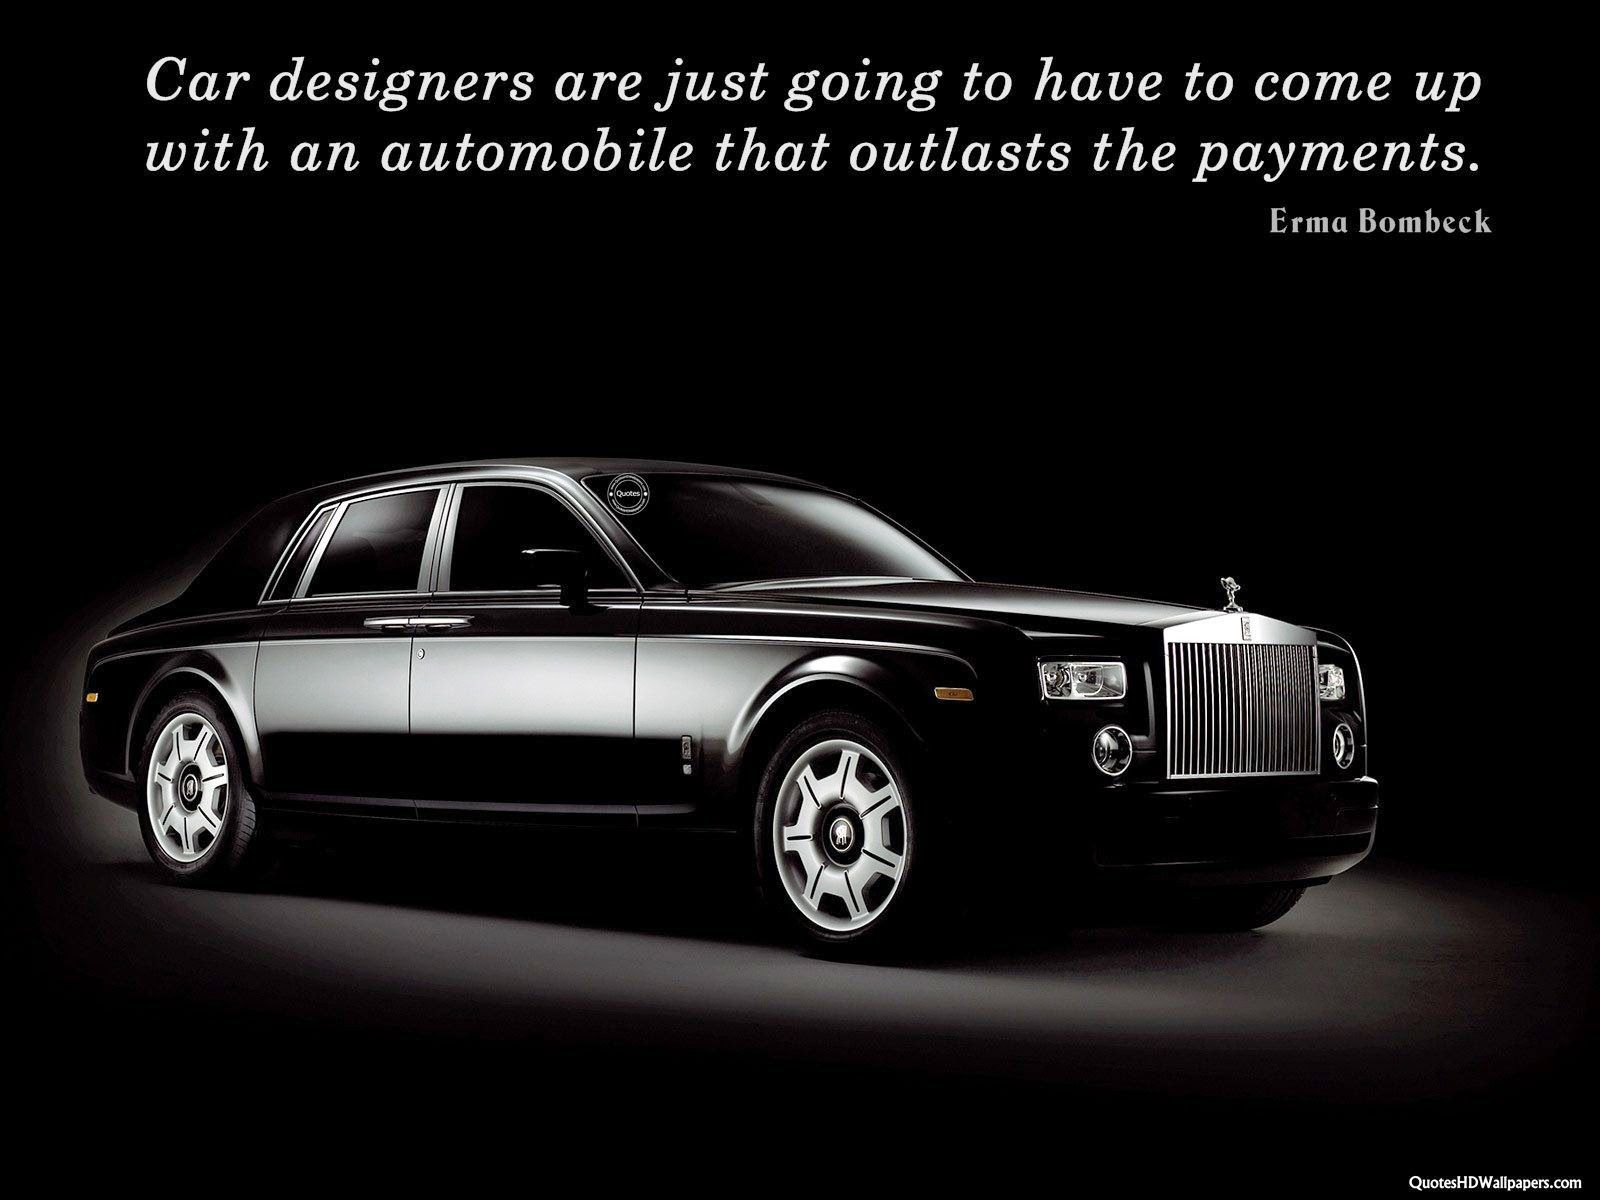 New Car Quotes Motivational Quotes On Car  Google Search  Motivational Quotes